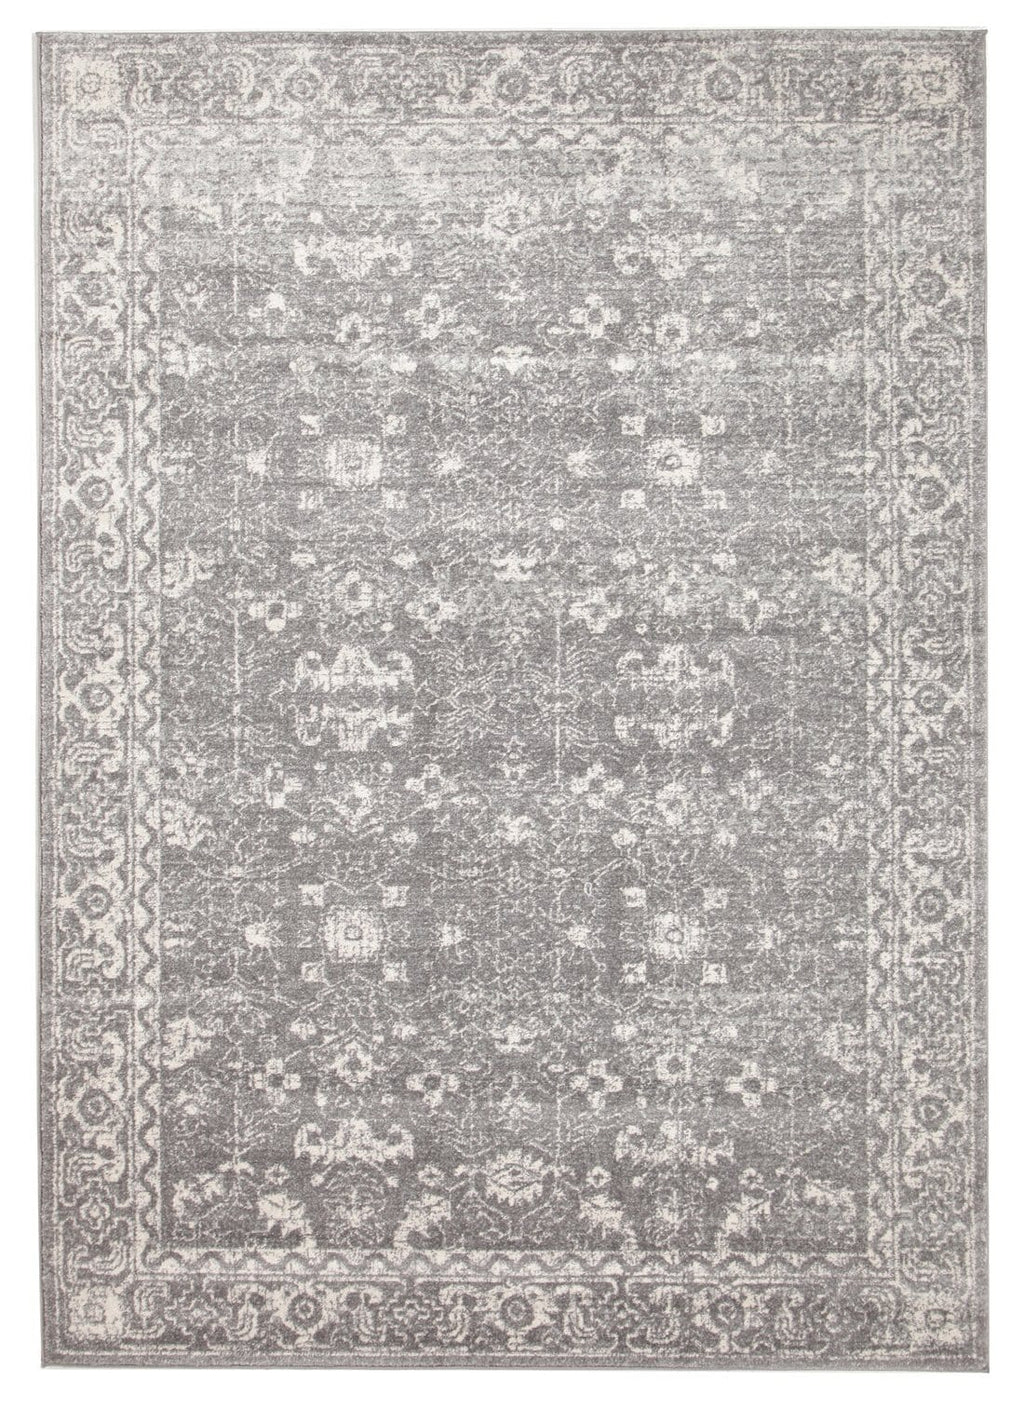 Karakol Grey and White Persian Pattern Rug